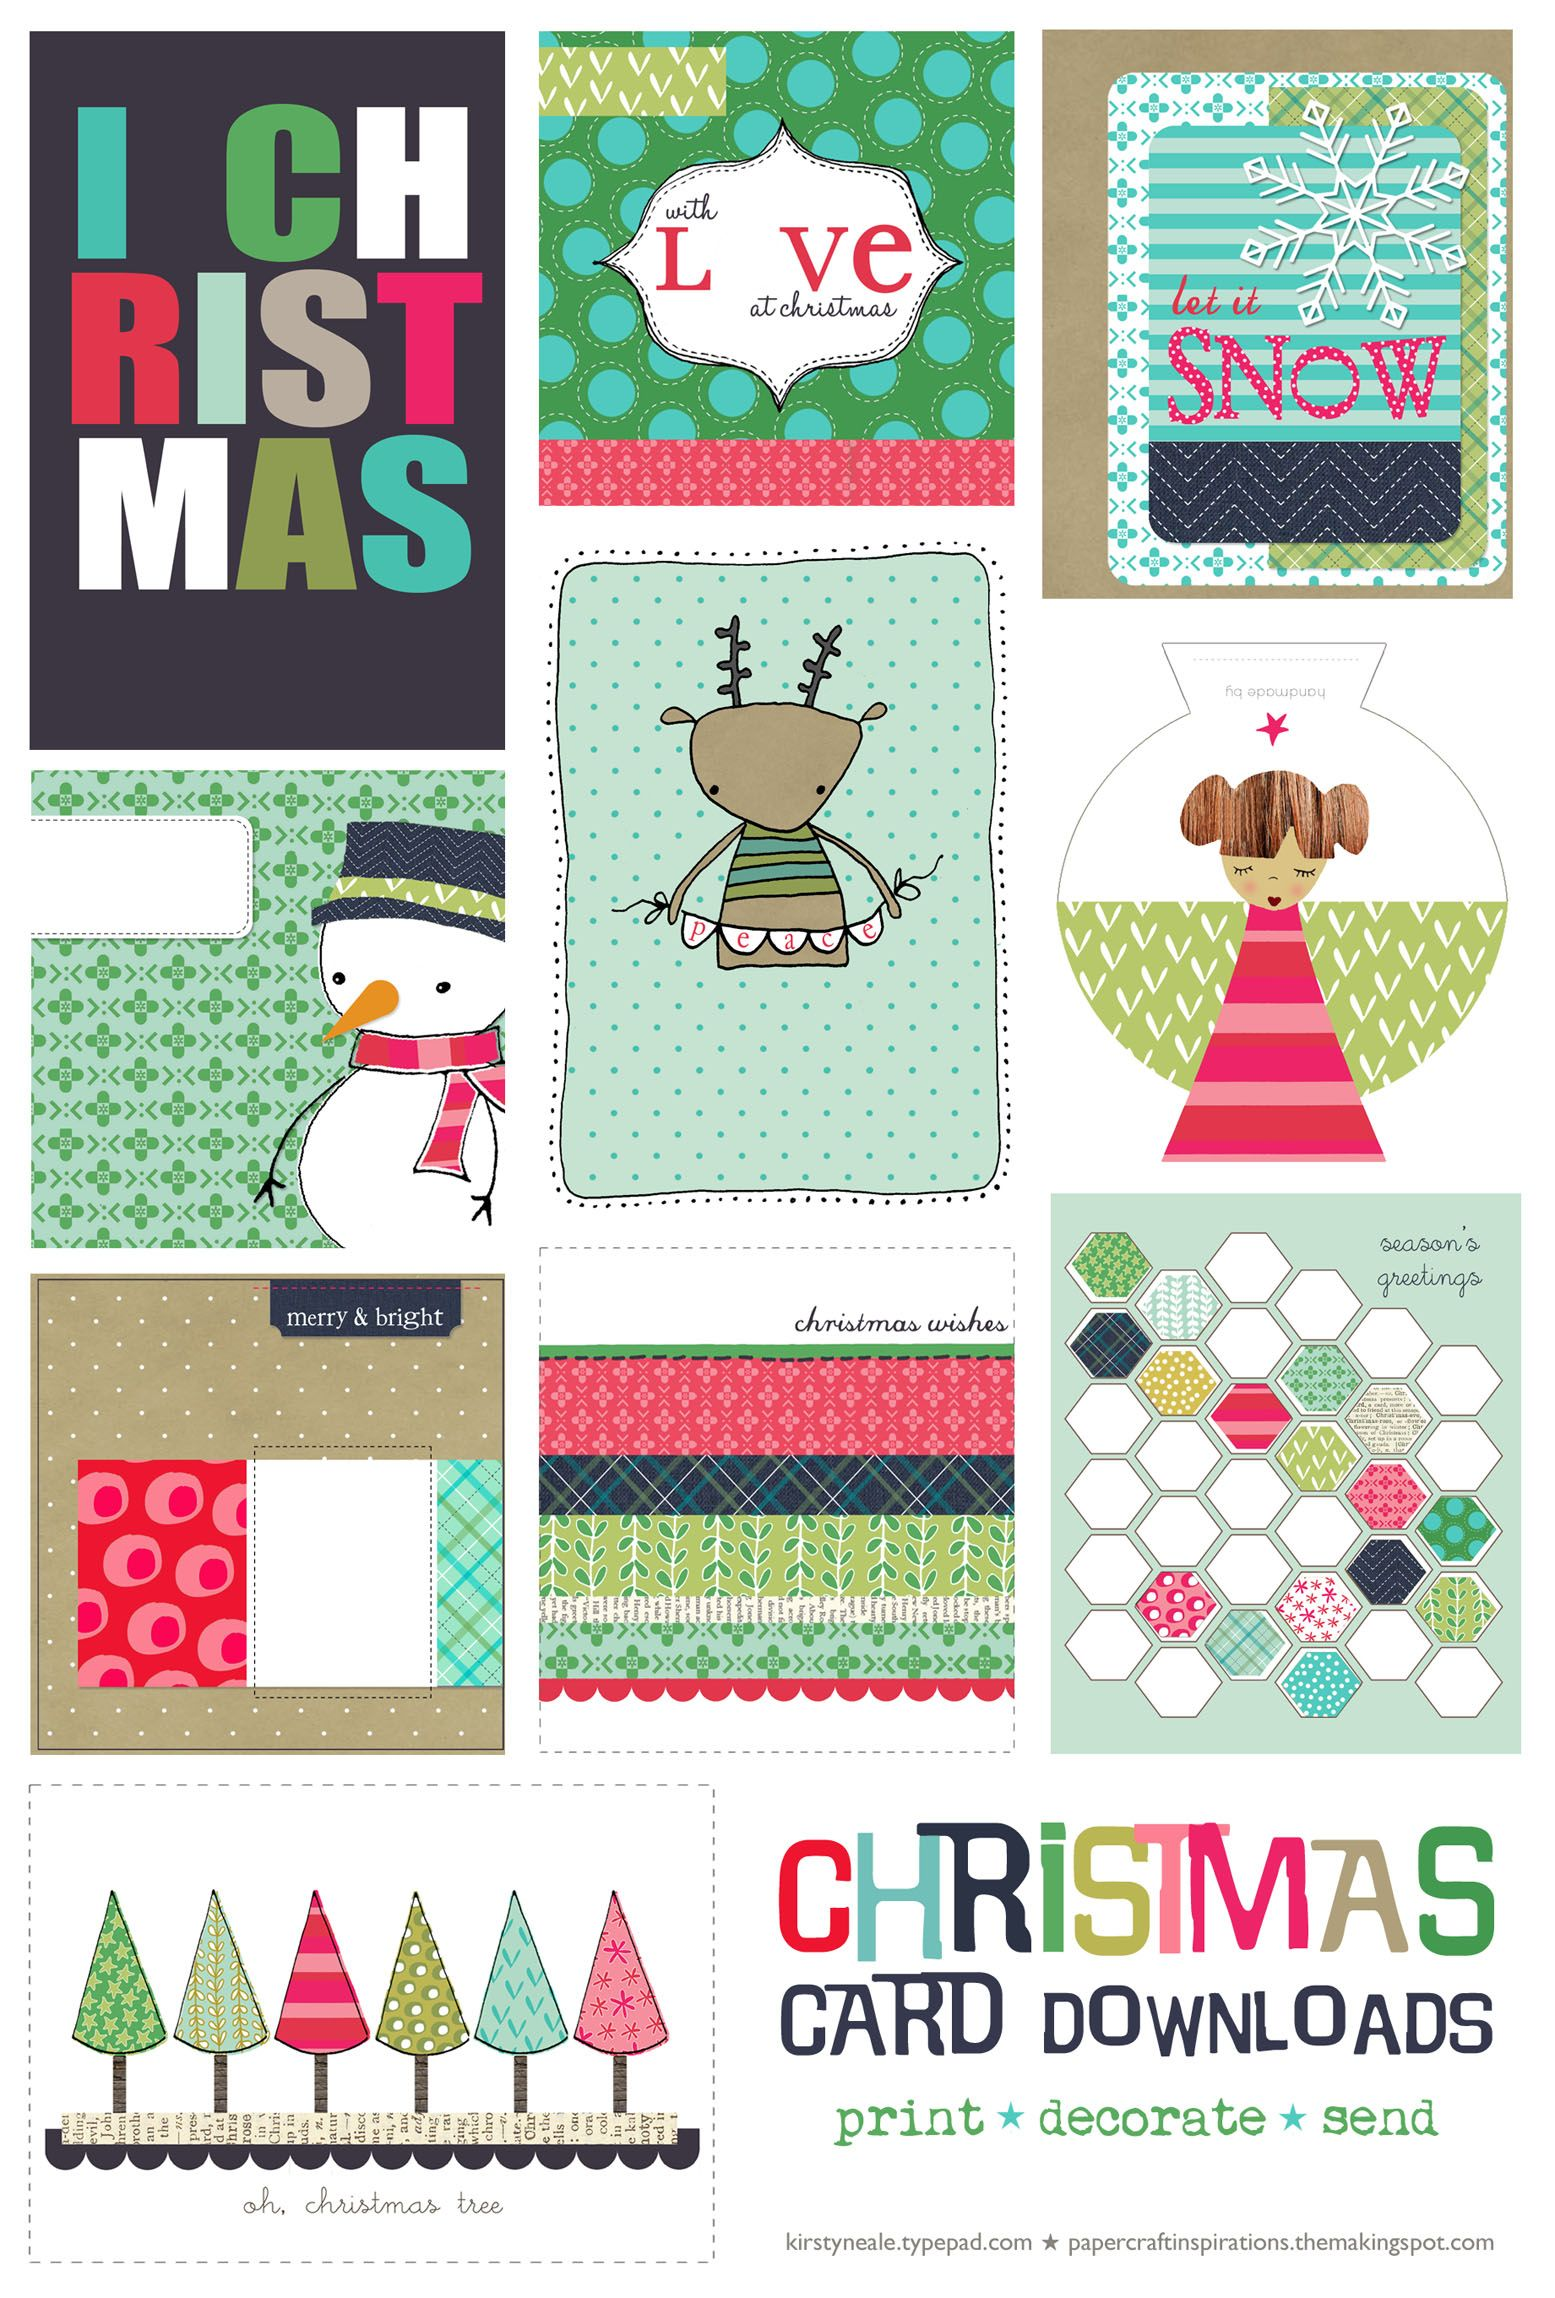 6a010534f2c8b8970c0154375d03dd970c pi 15552298 pixels free christmas card printable set for project life by cathy kristyandbryce Images